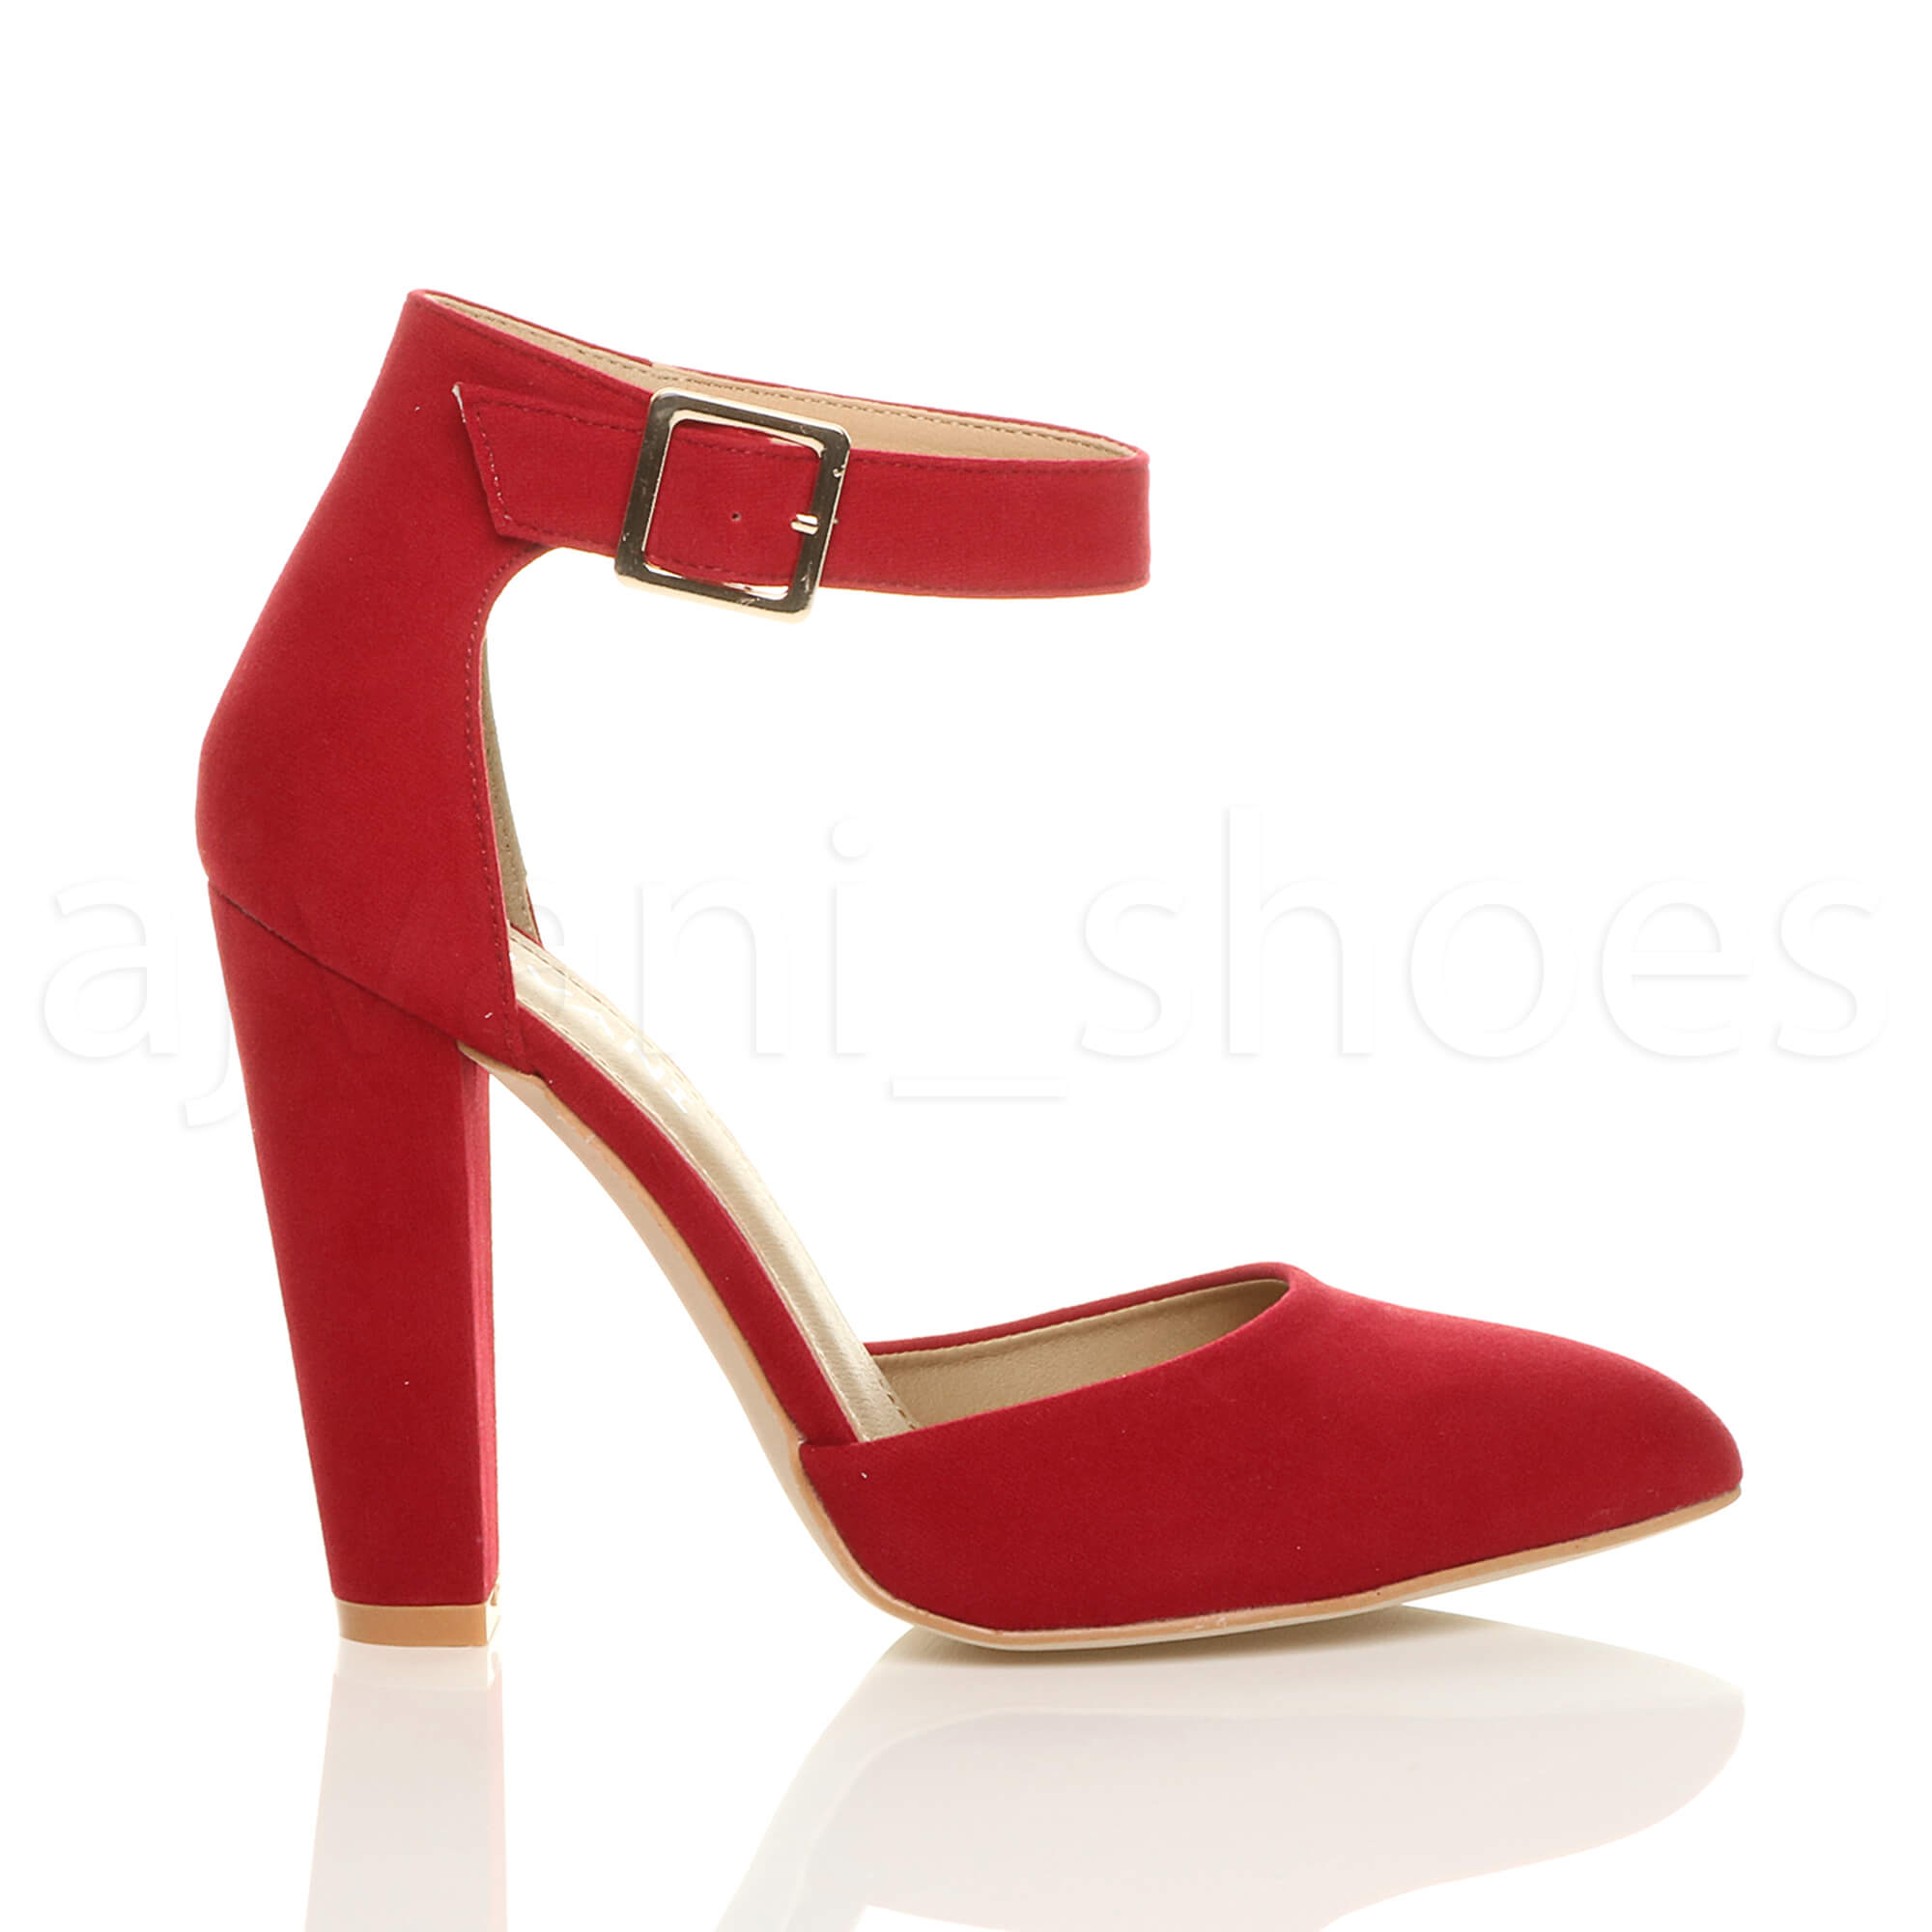 WOMENS-LADIES-HIGH-BLOCK-HEEL-ANKLE-STRAP-BUCKLE-POINTED-COURT-SHOES-SIZE thumbnail 101